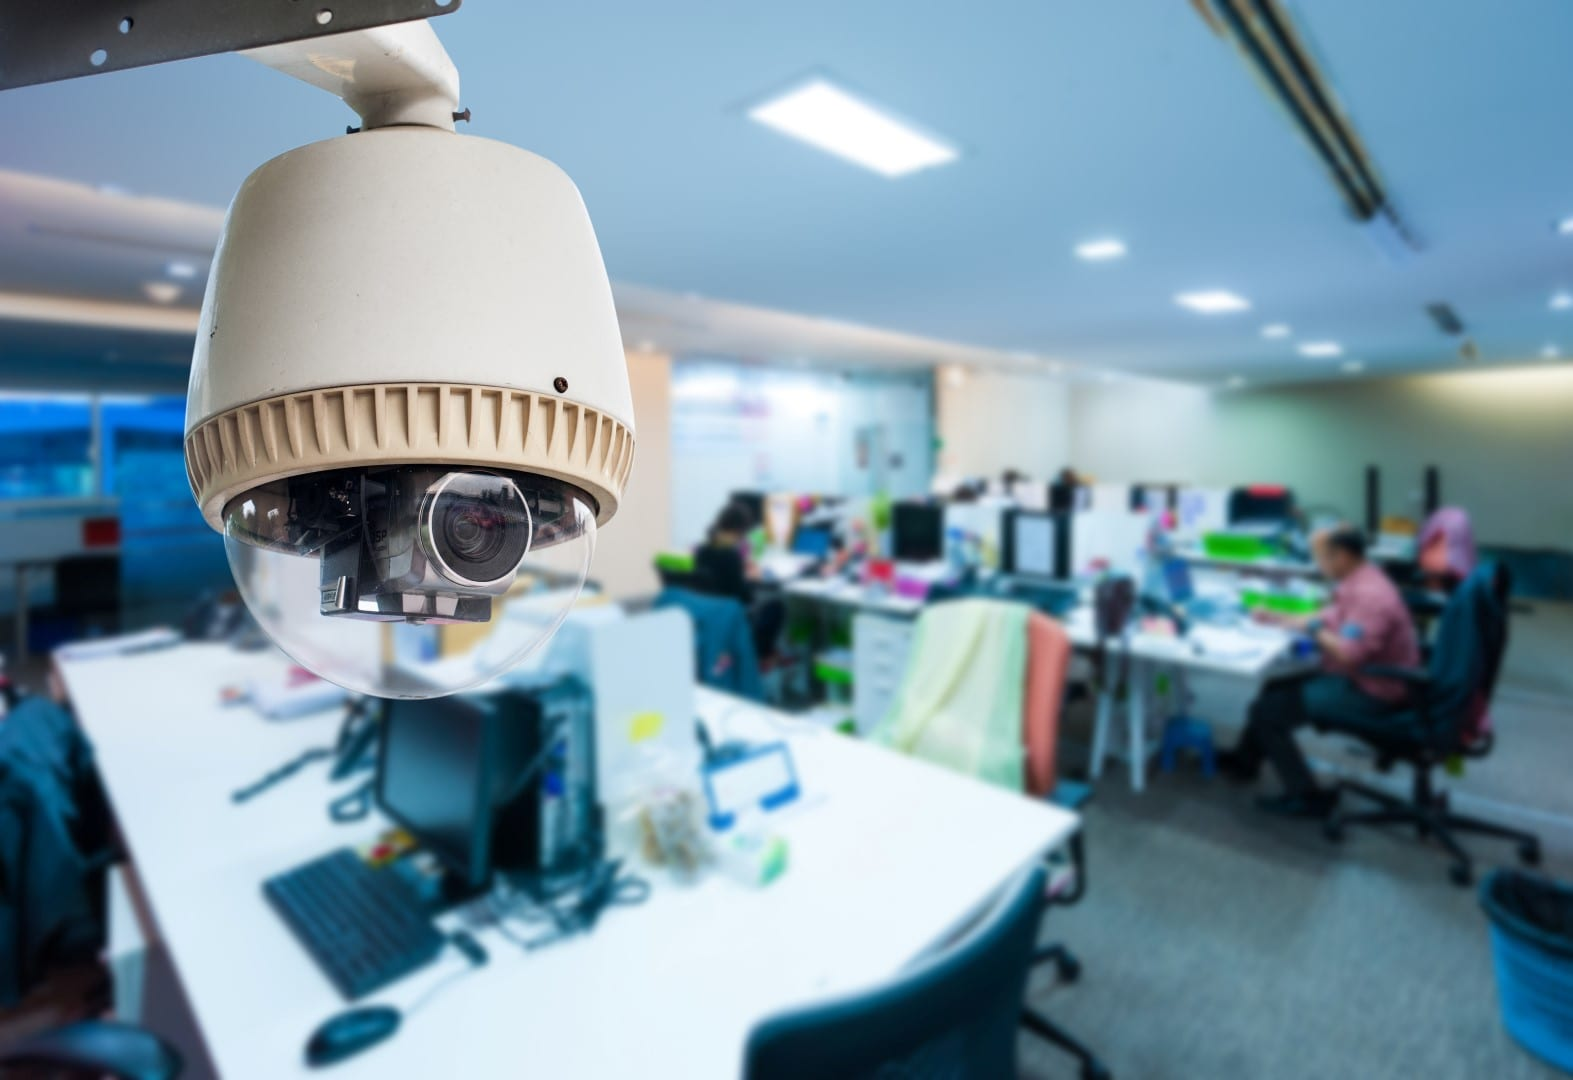 CCTV Cameras and Employee Rights: Everything You Need To Know